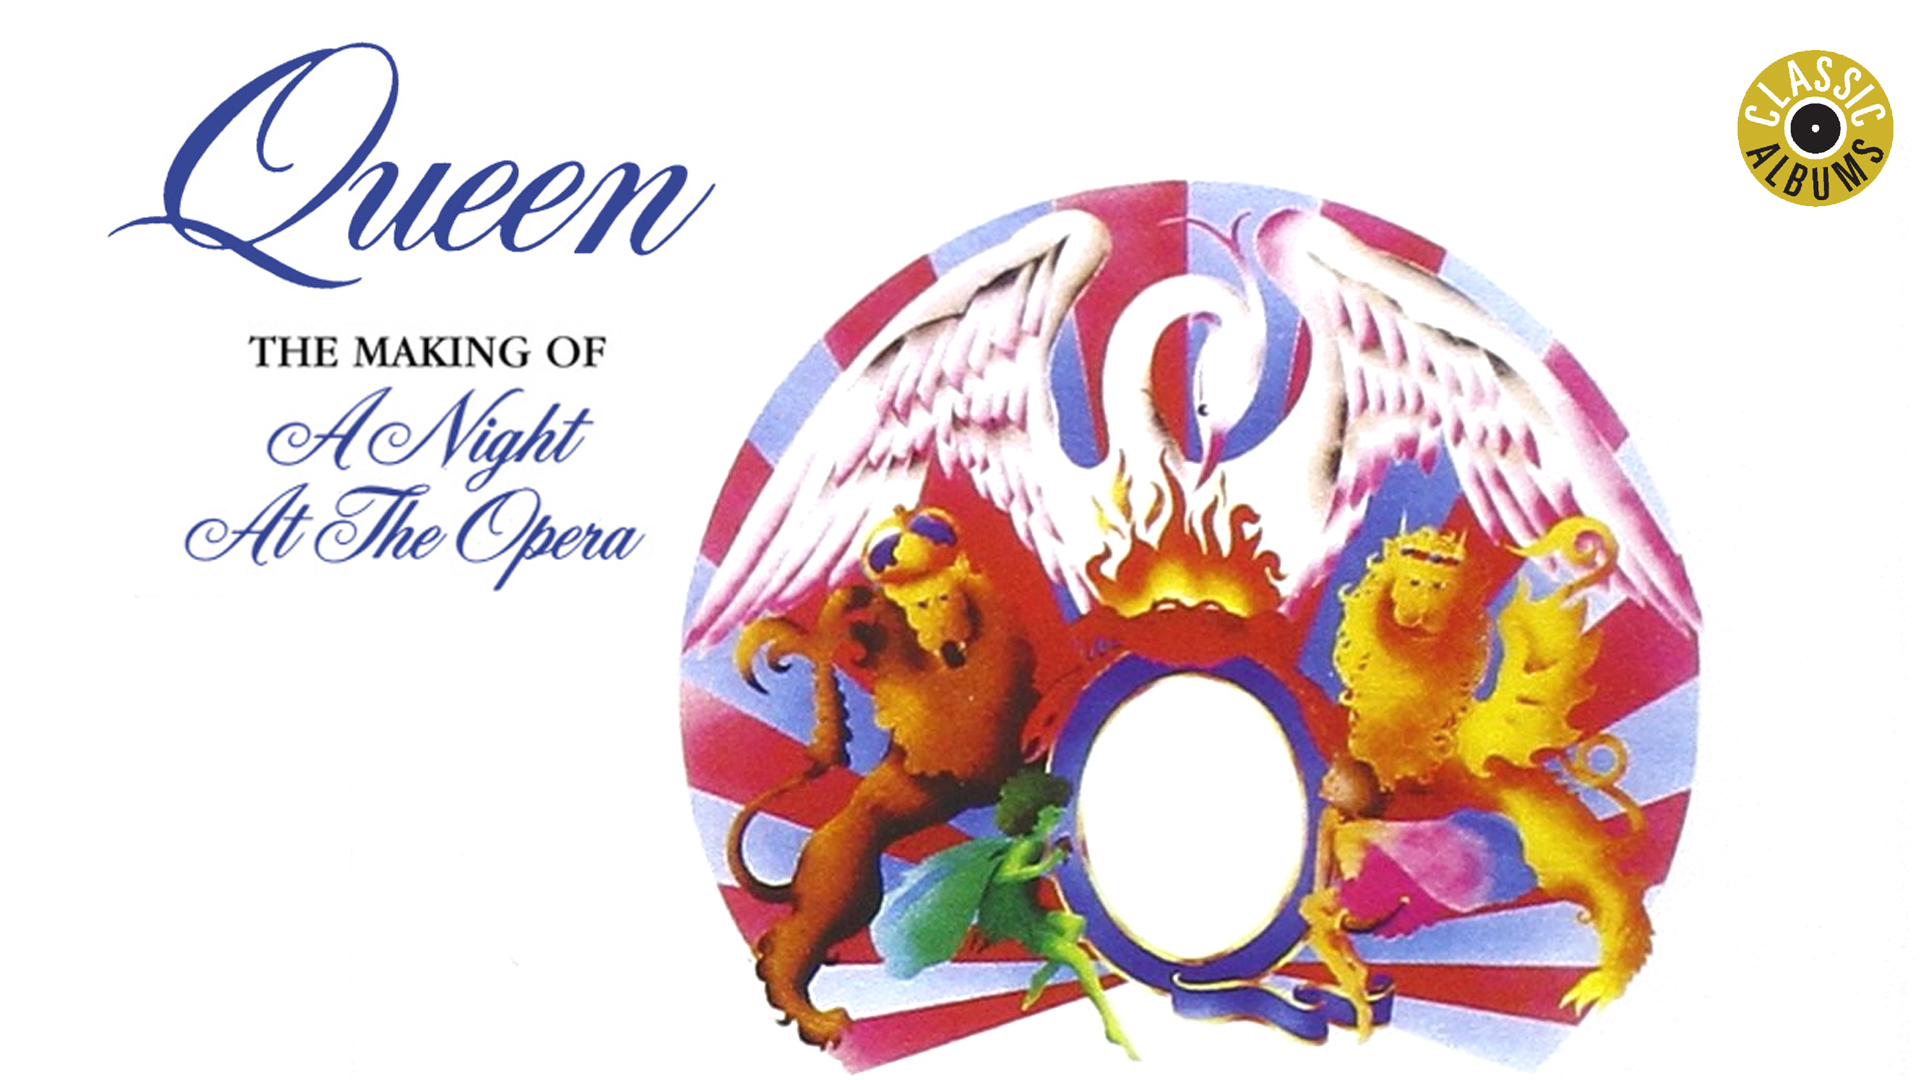 Queen - The Making Of A Night At The Opera (Classic Album)